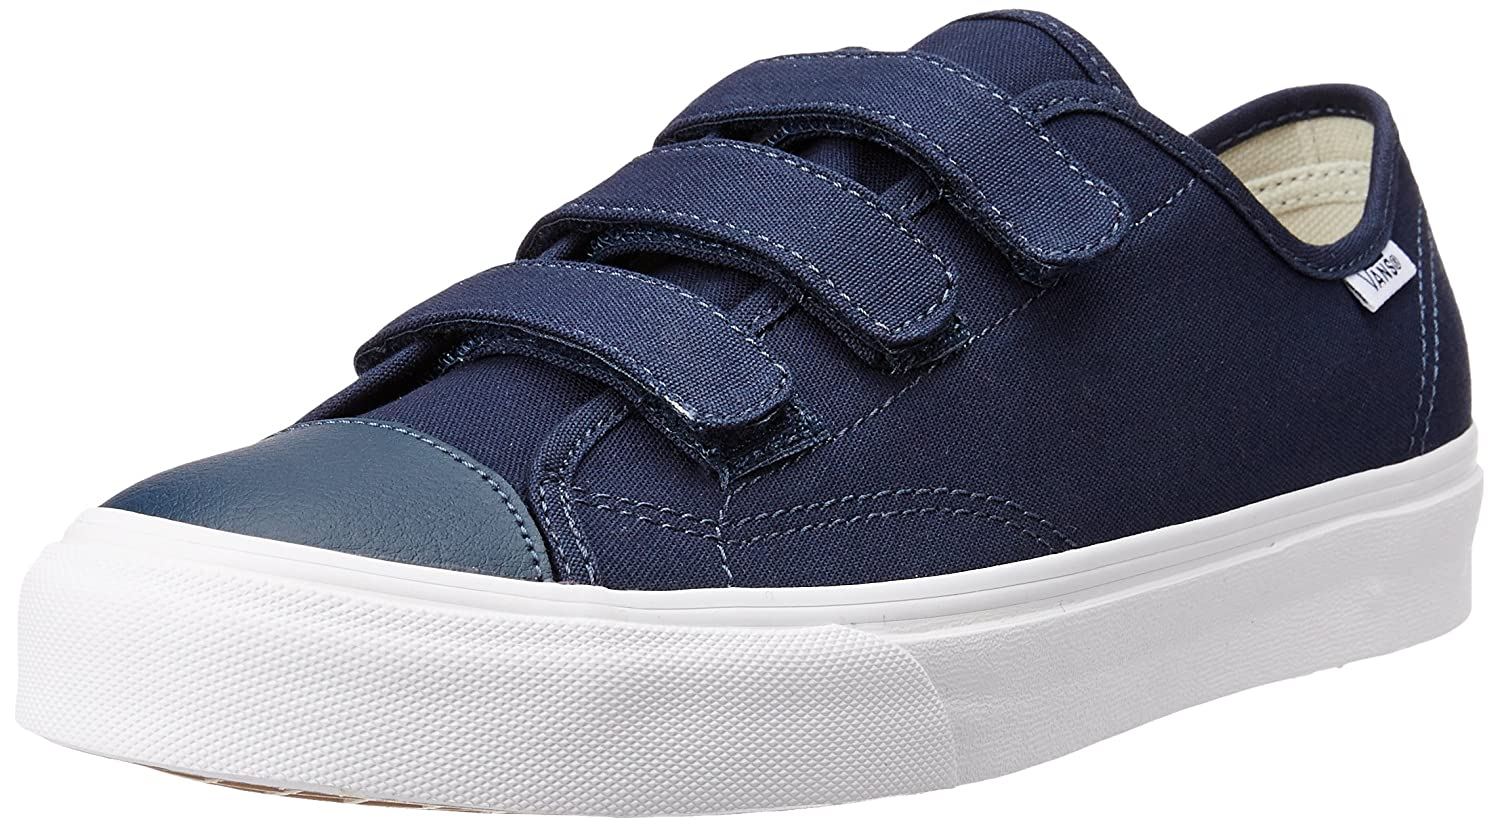 70bab377c0c Vans Unisex Prison Issue Sneakers  Buy Online at Low Prices in India -  Amazon.in